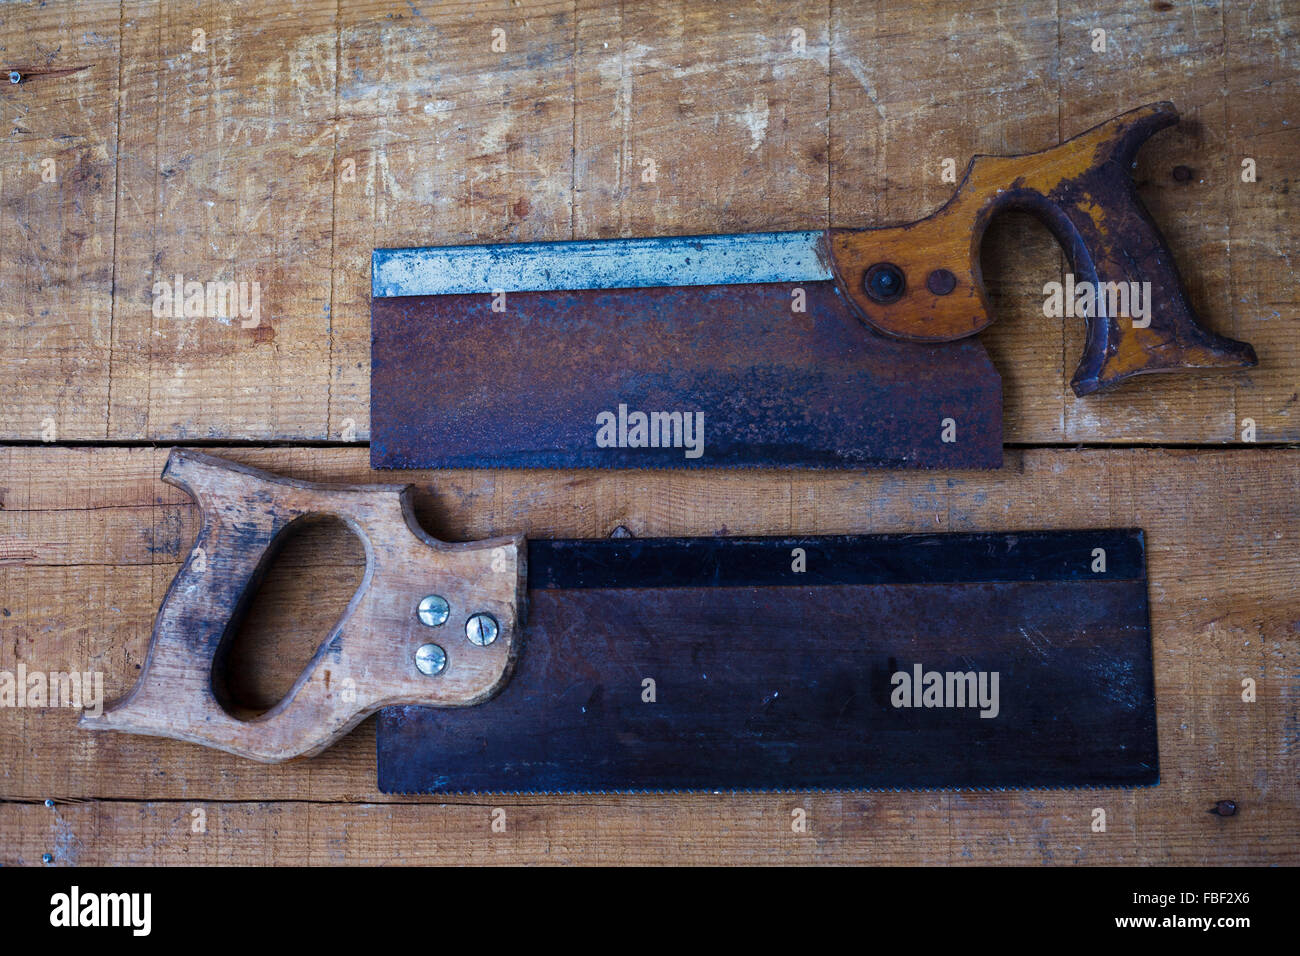 Directly Above View Of Old-Fashioned Carpentry Tools - Stock Image